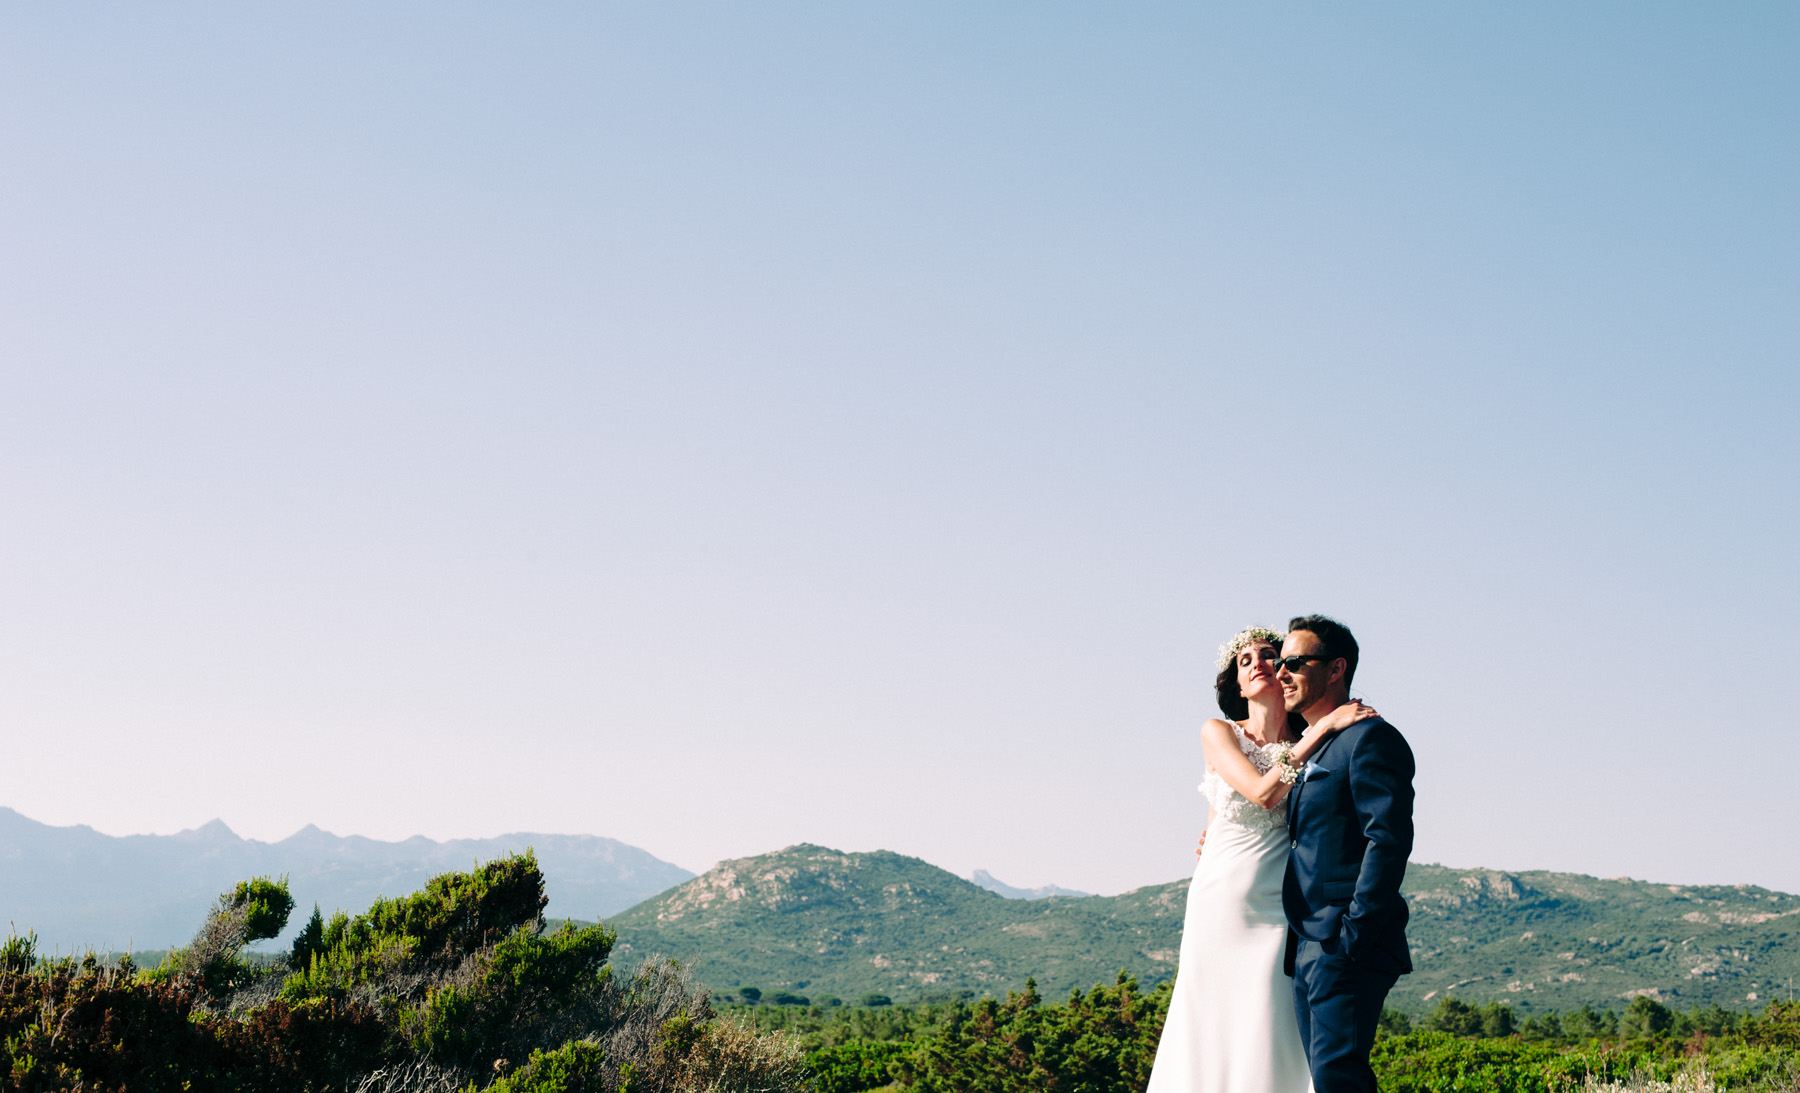 Photographe mariage montpellier corse - Mademoiselle G photographie (145)